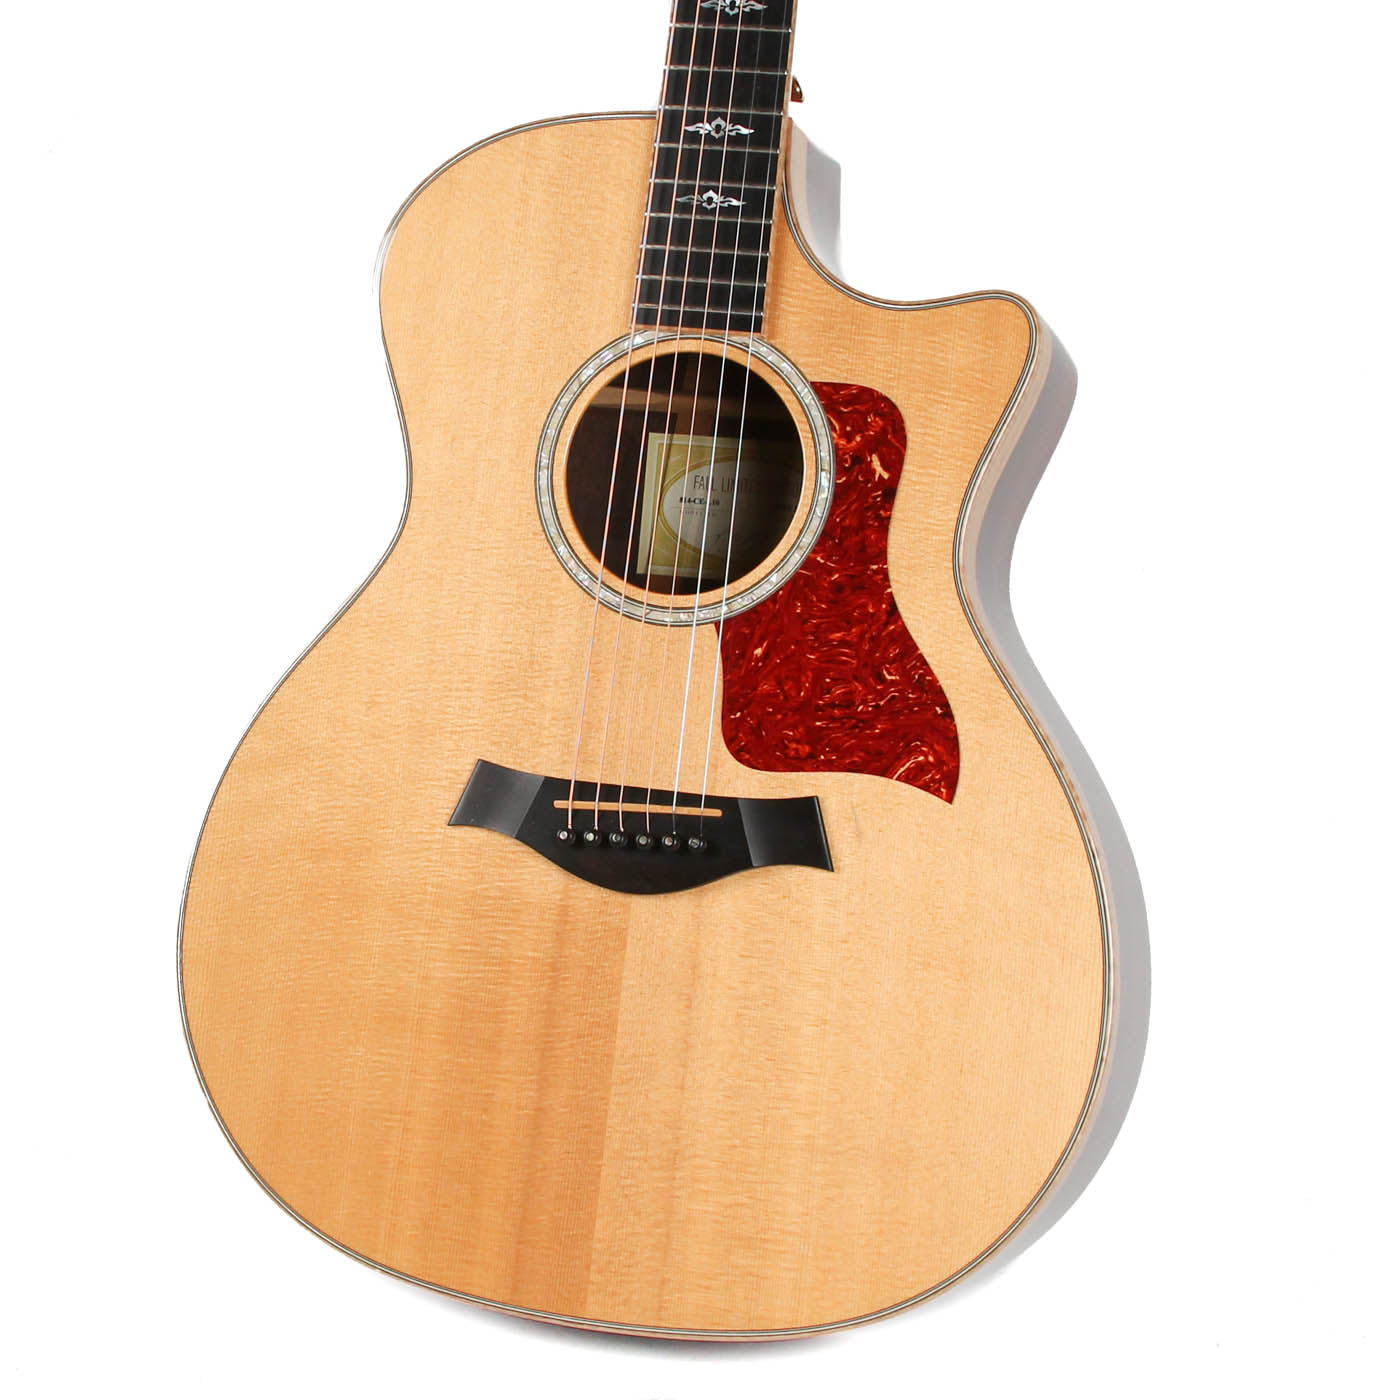 2005 Taylor 814ce L-10 Fall Limited Edition Natural image 2